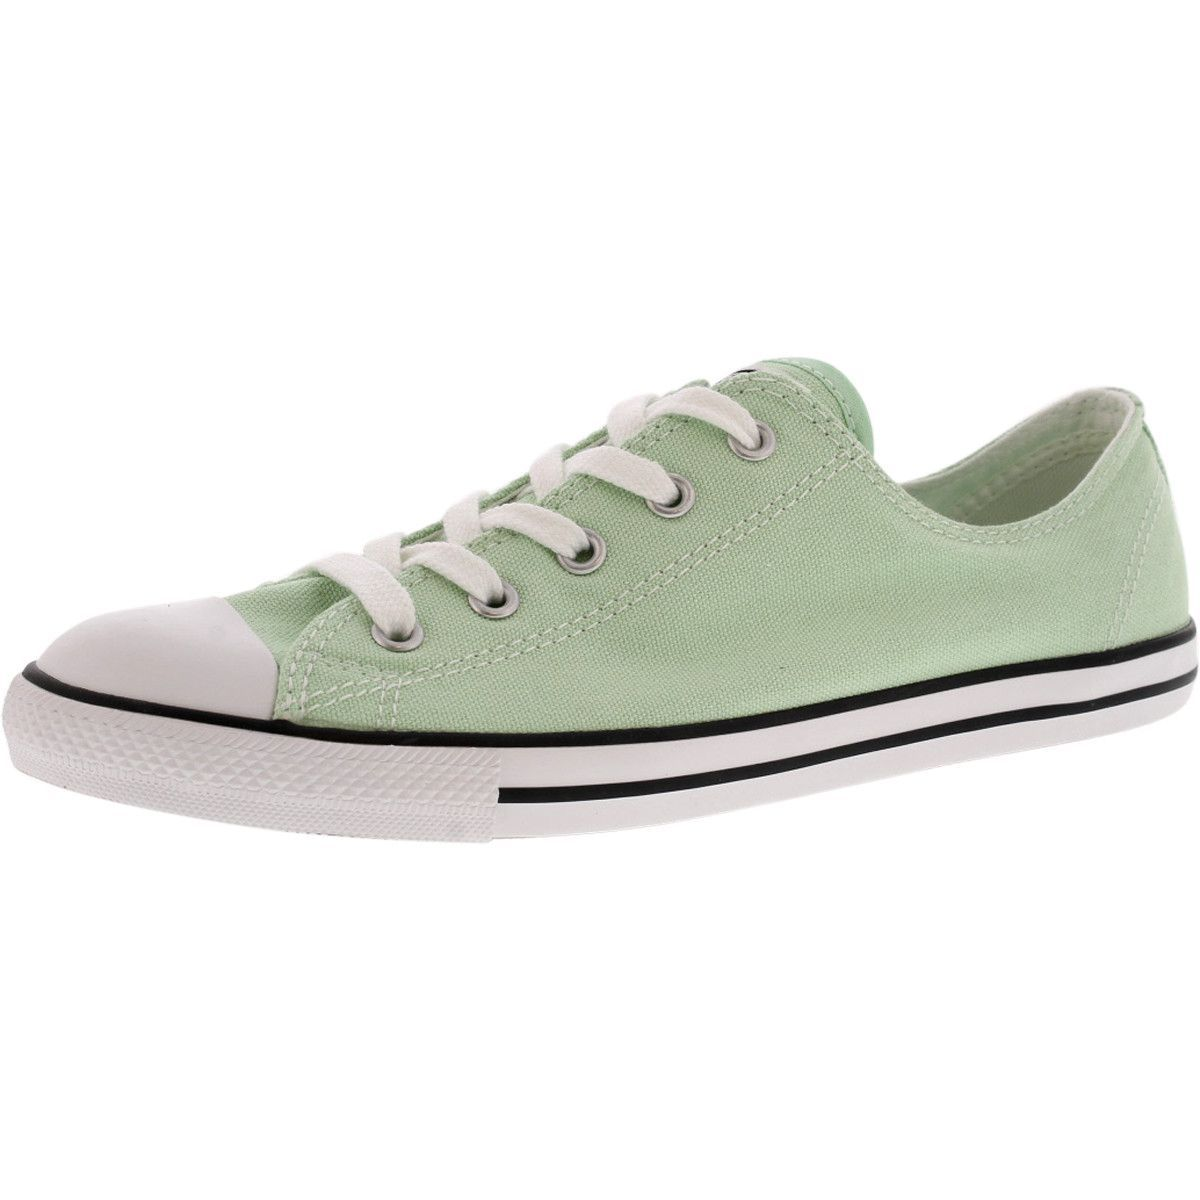 35f16a9d443578 Converse - Women s CT All Star Dainty Low Canvas Sneakers - Mint Julep